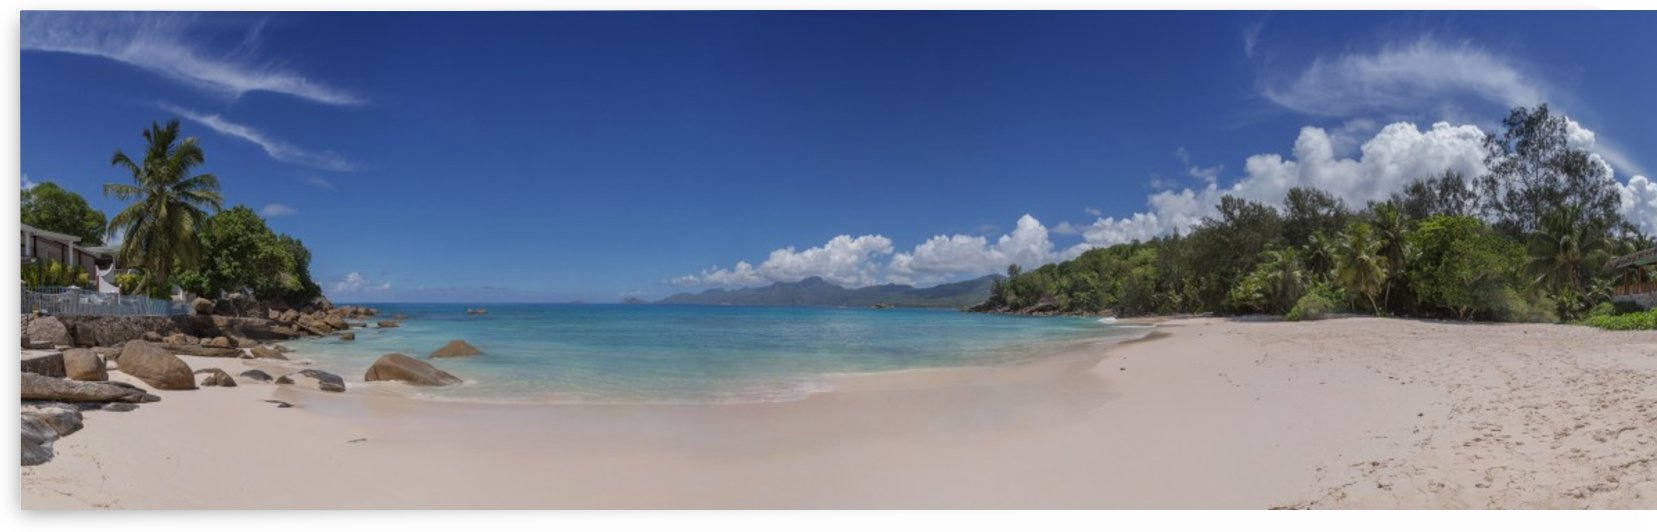 Panorama beautiful view of Seychelles by Dmiry Laudin